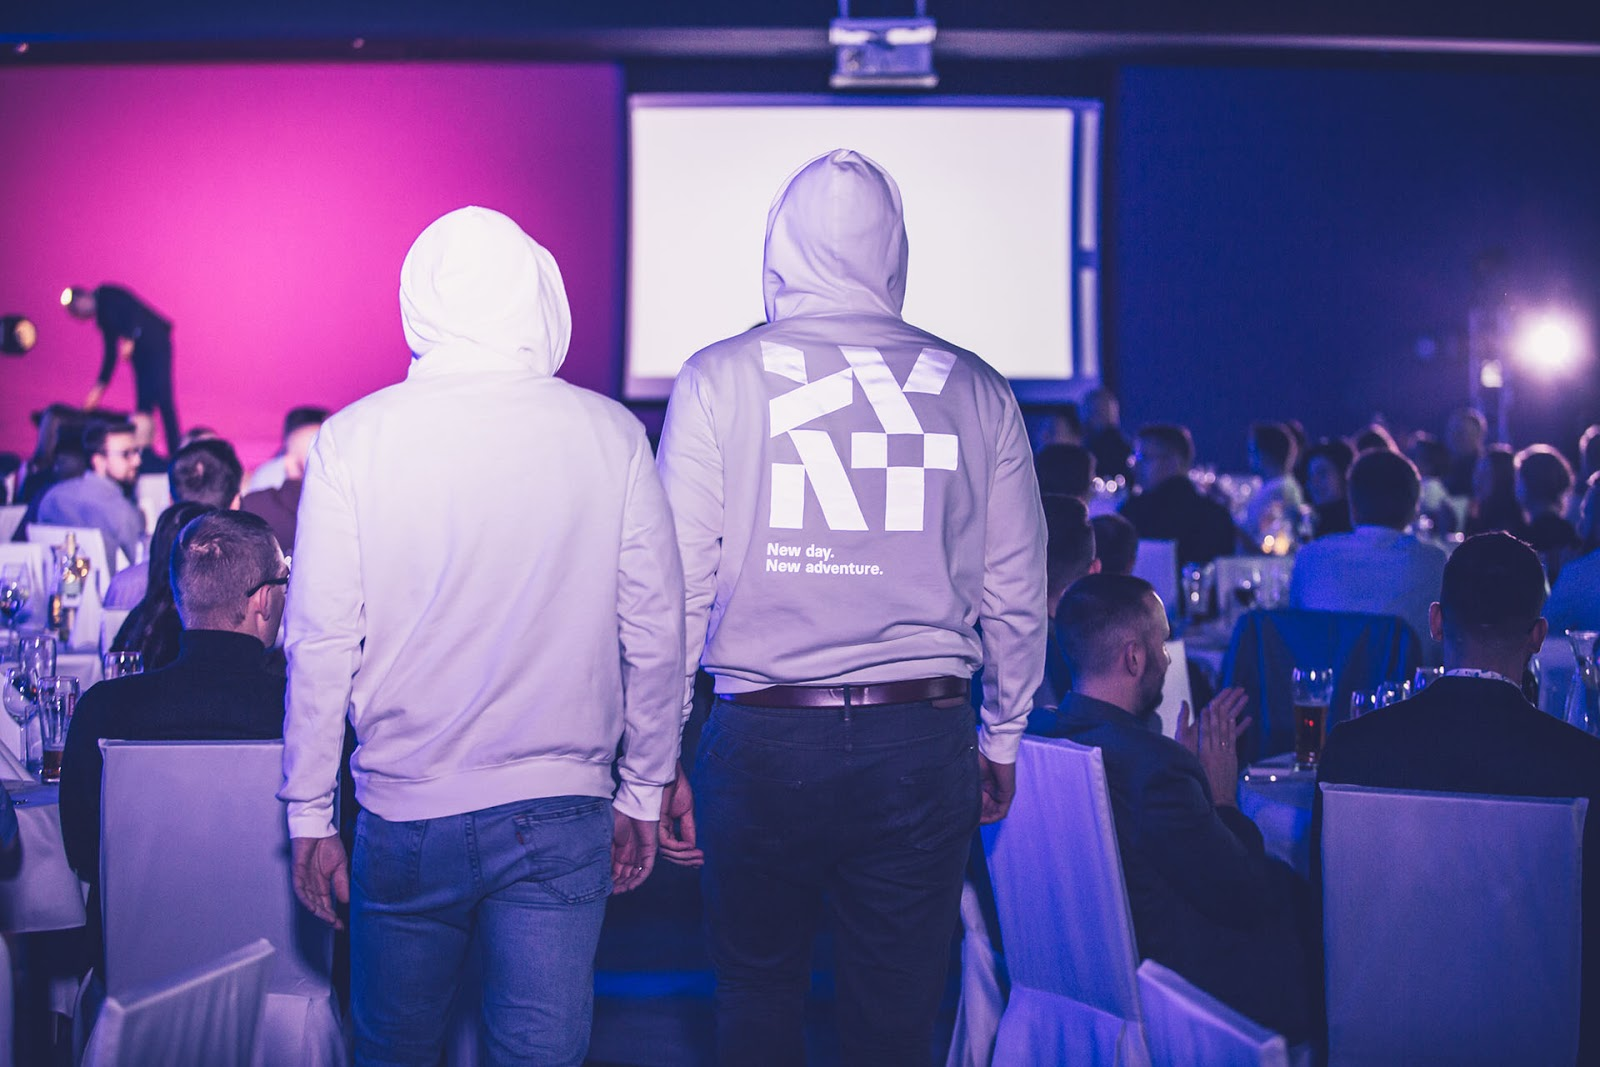 The speakers entering the stage had a special hoodies with the new Divante logo reflecting in the dark, photo: Sławek Przerwa